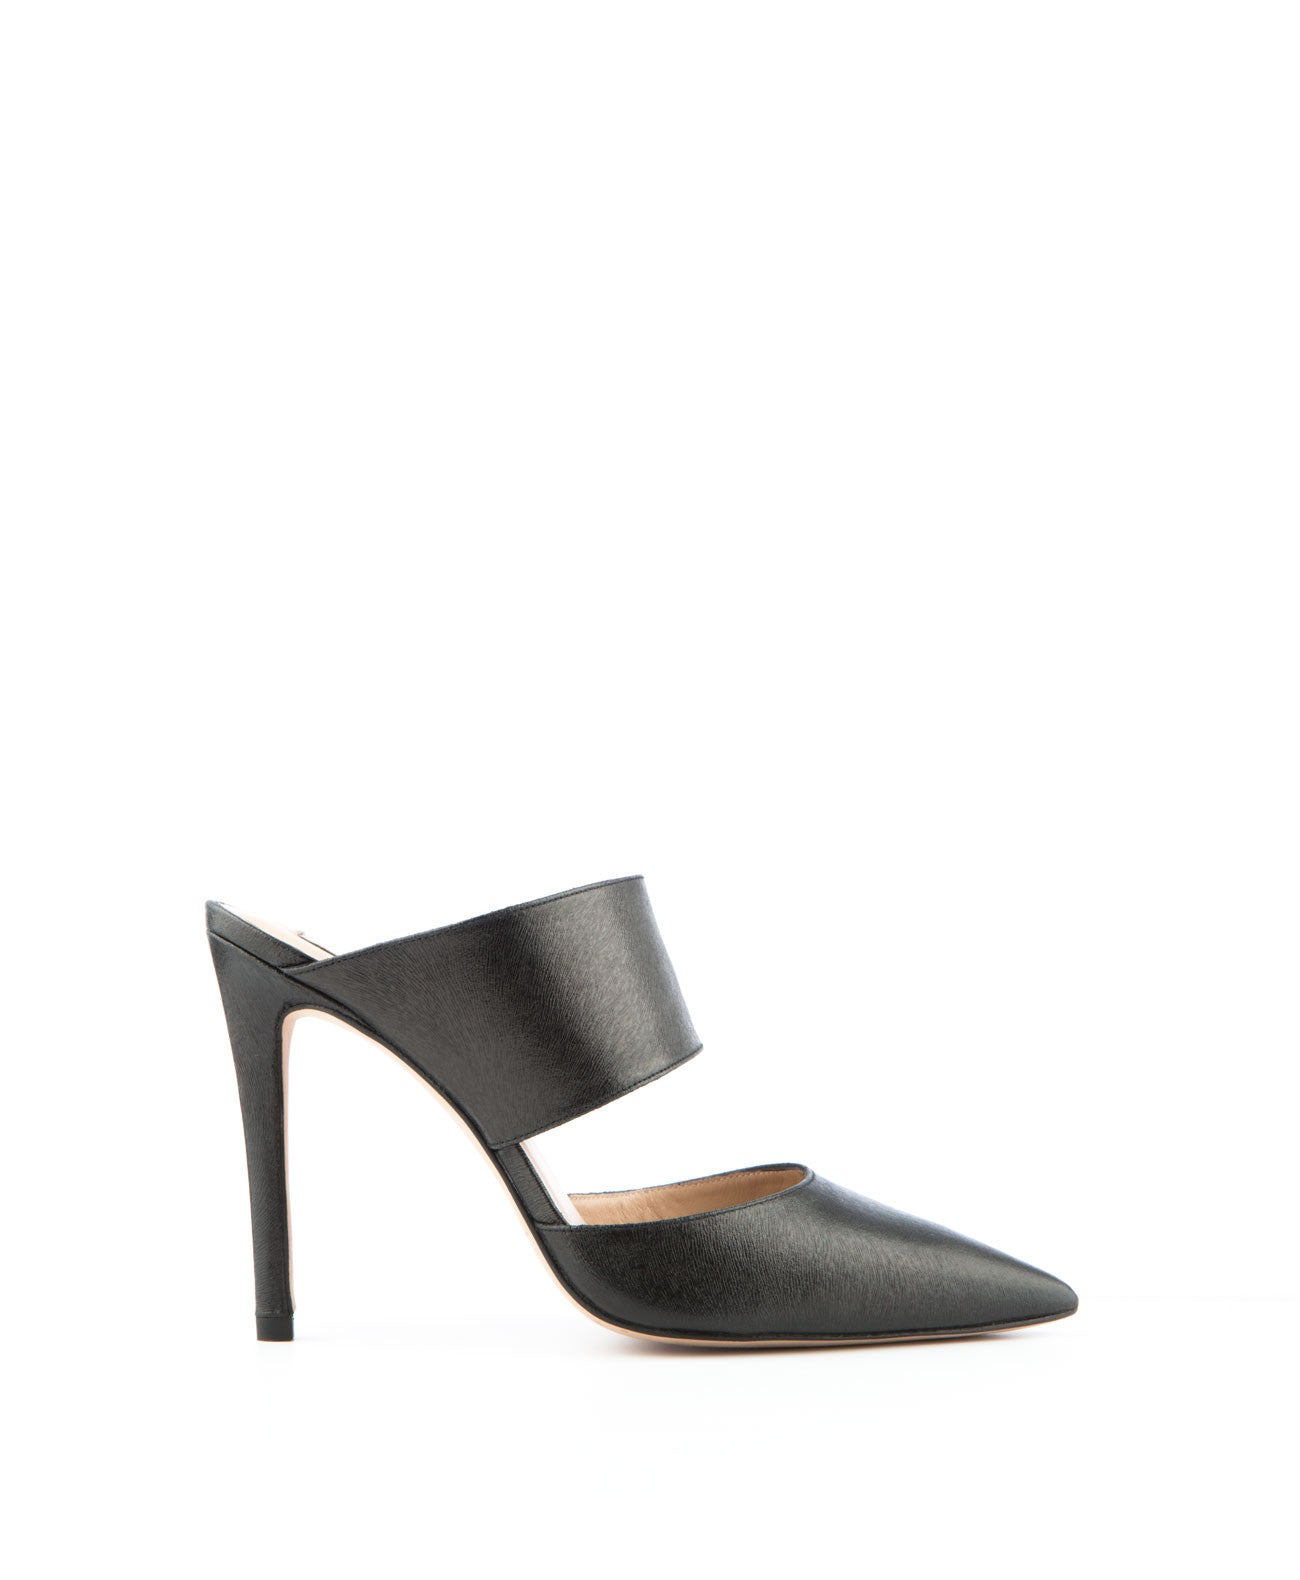 Black Resin Leather Mule - Koko & Palenki - 1